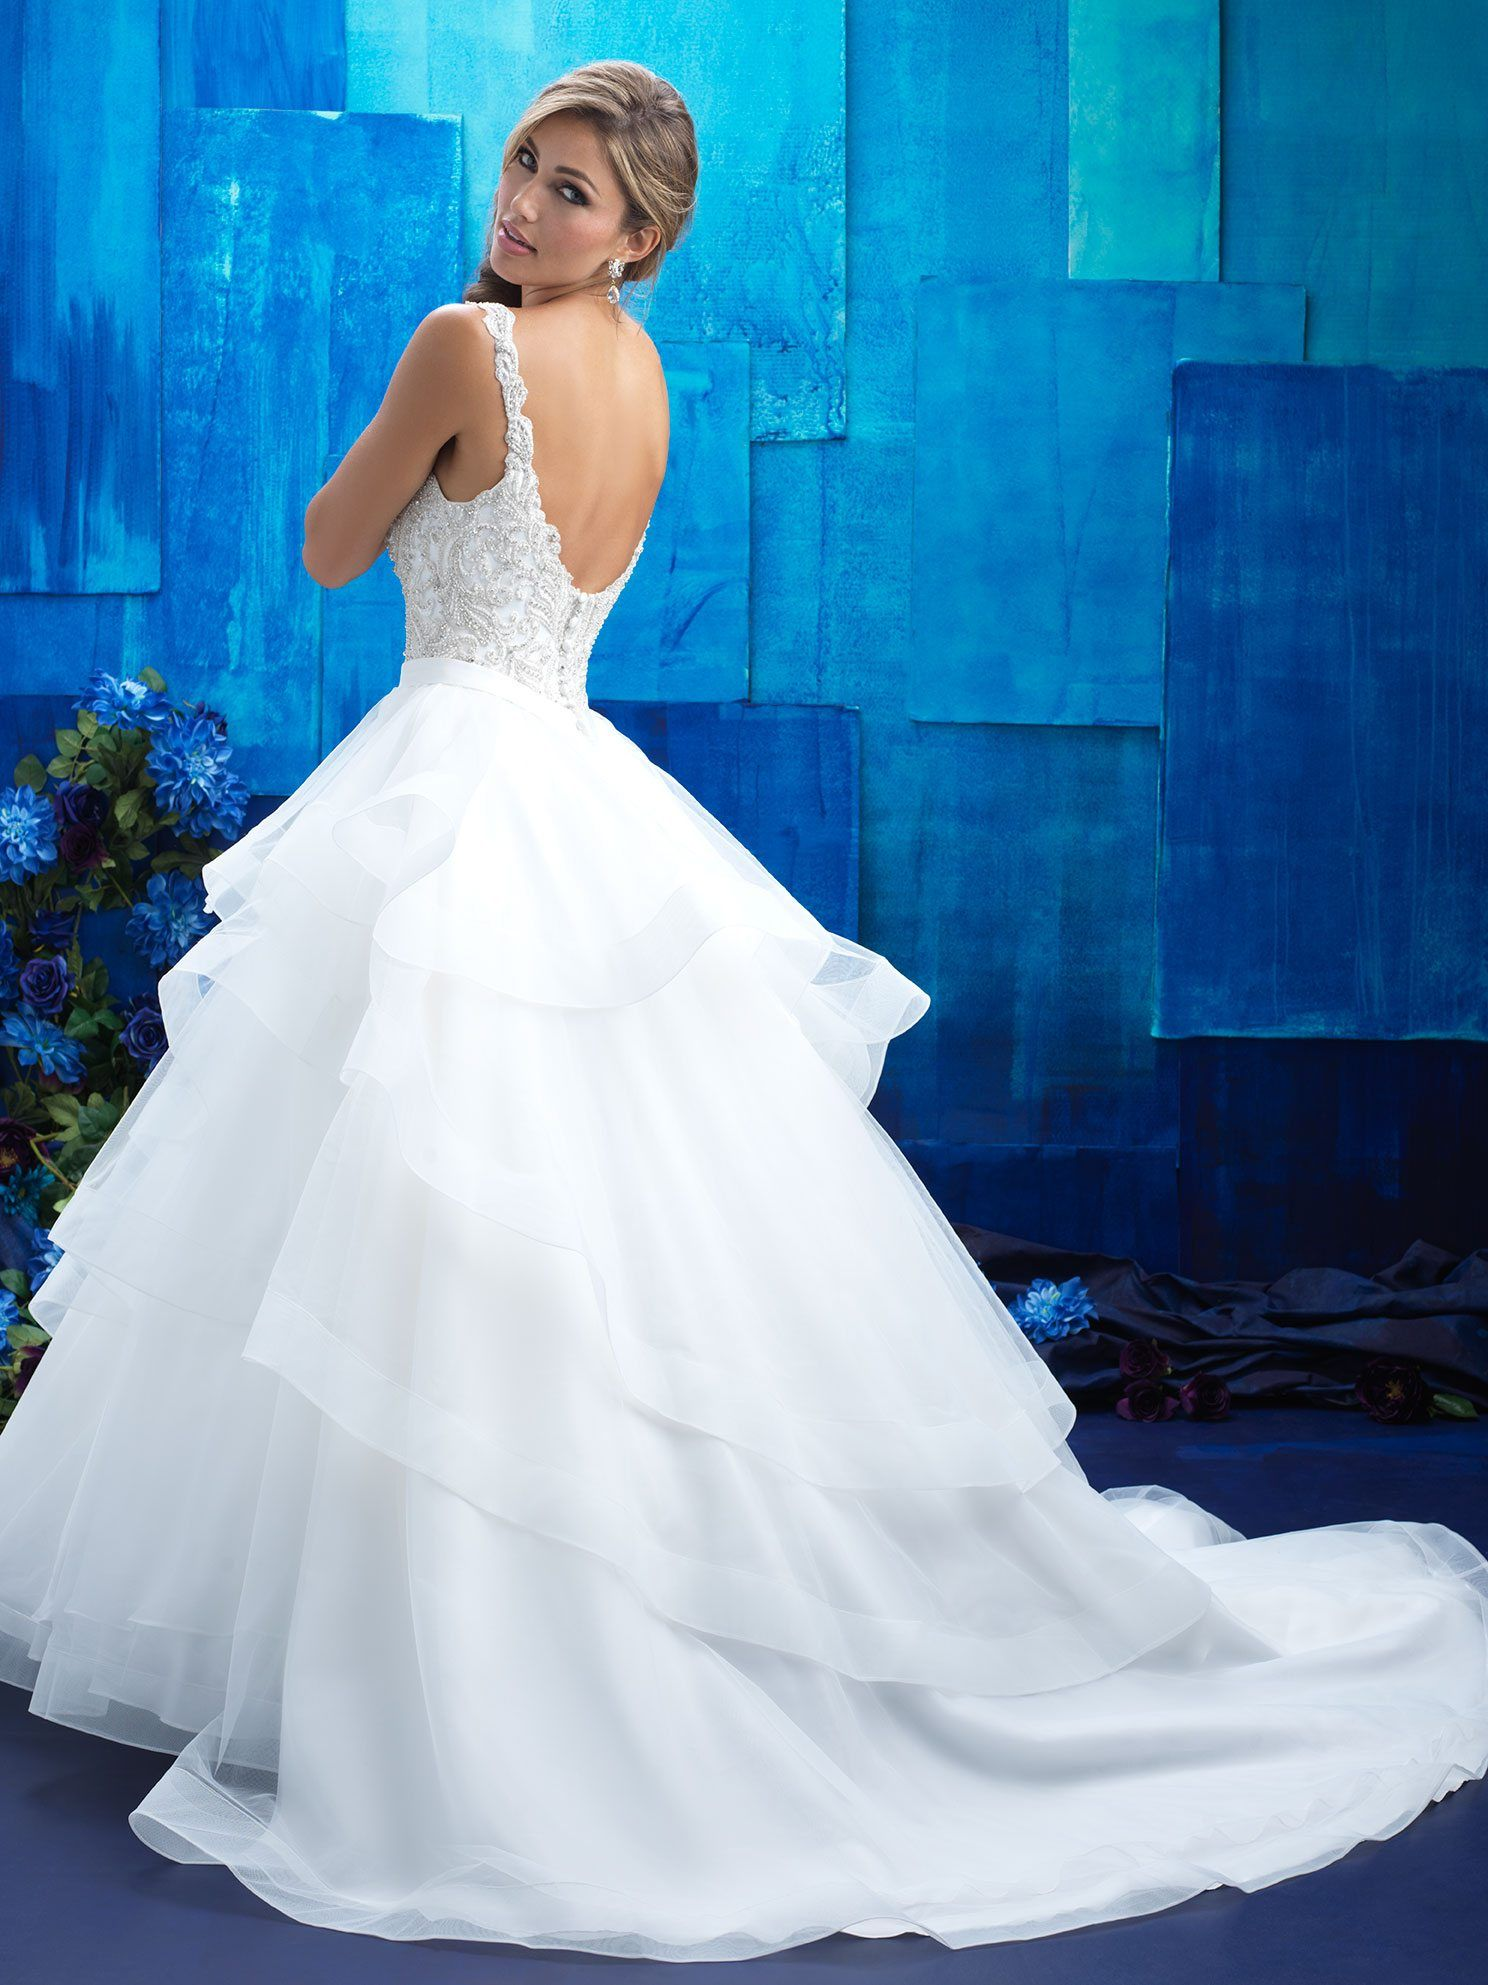 Style tiered structured ruffles compose the full skirt of this